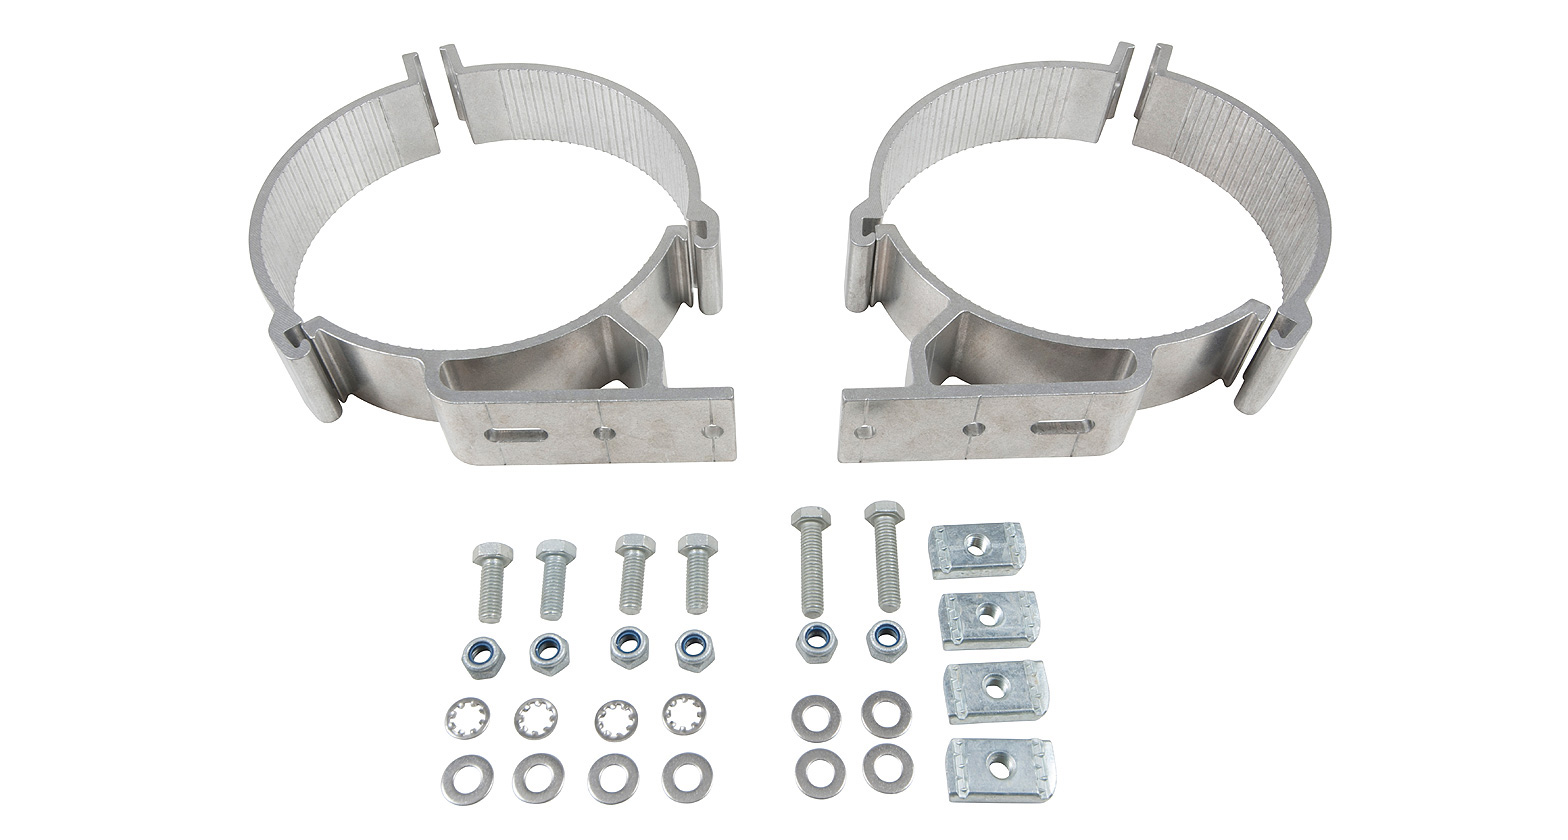 150mm Conduit Clamps (x2)